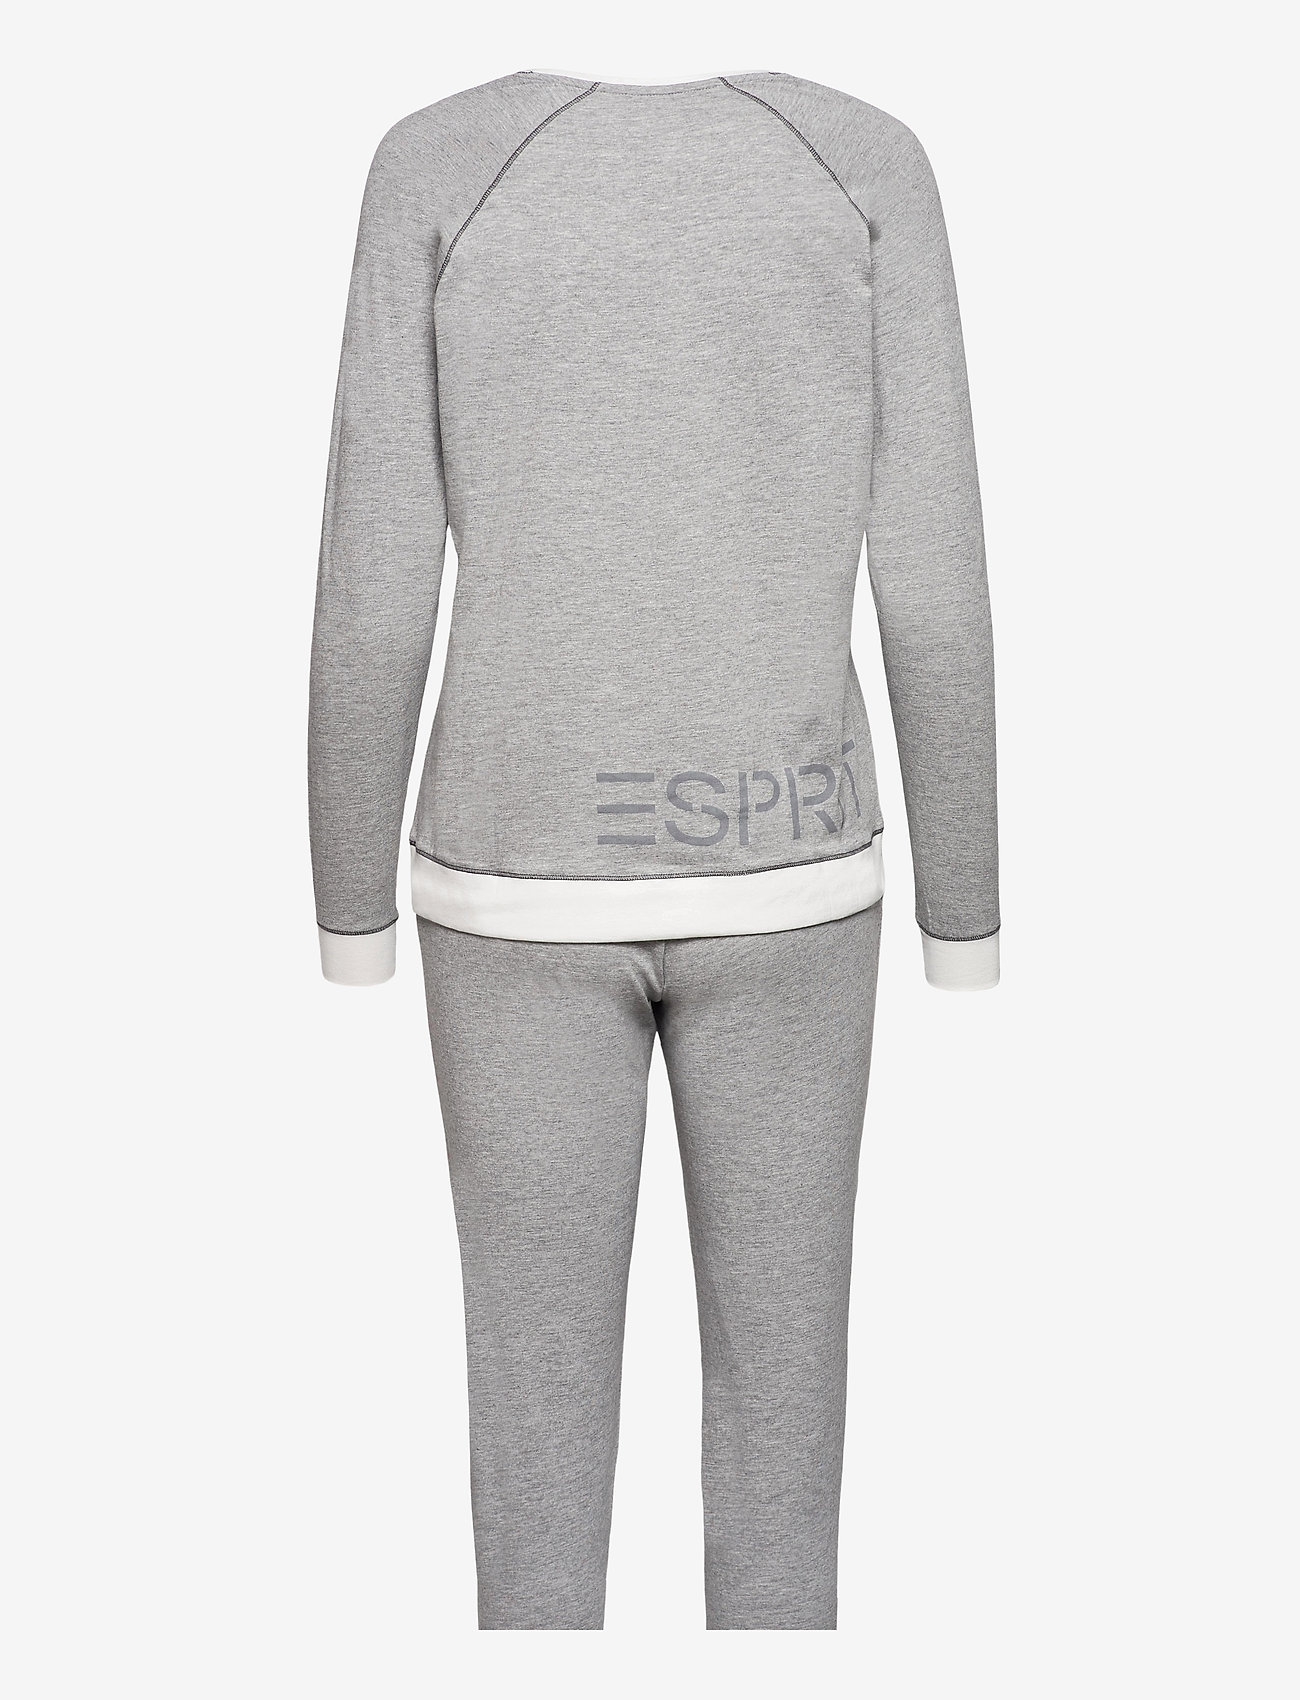 Esprit Bodywear Women - Pyjamas - pyjama''s - medium grey - 1